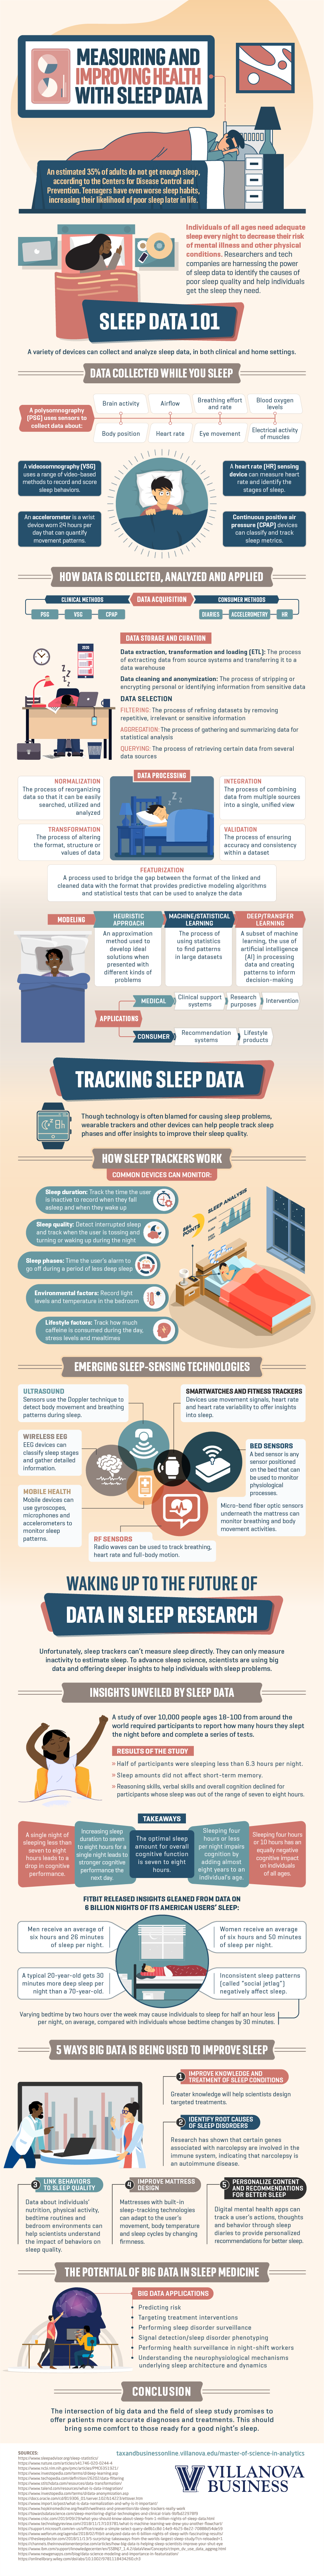 How data is being used to improve individual sleep.